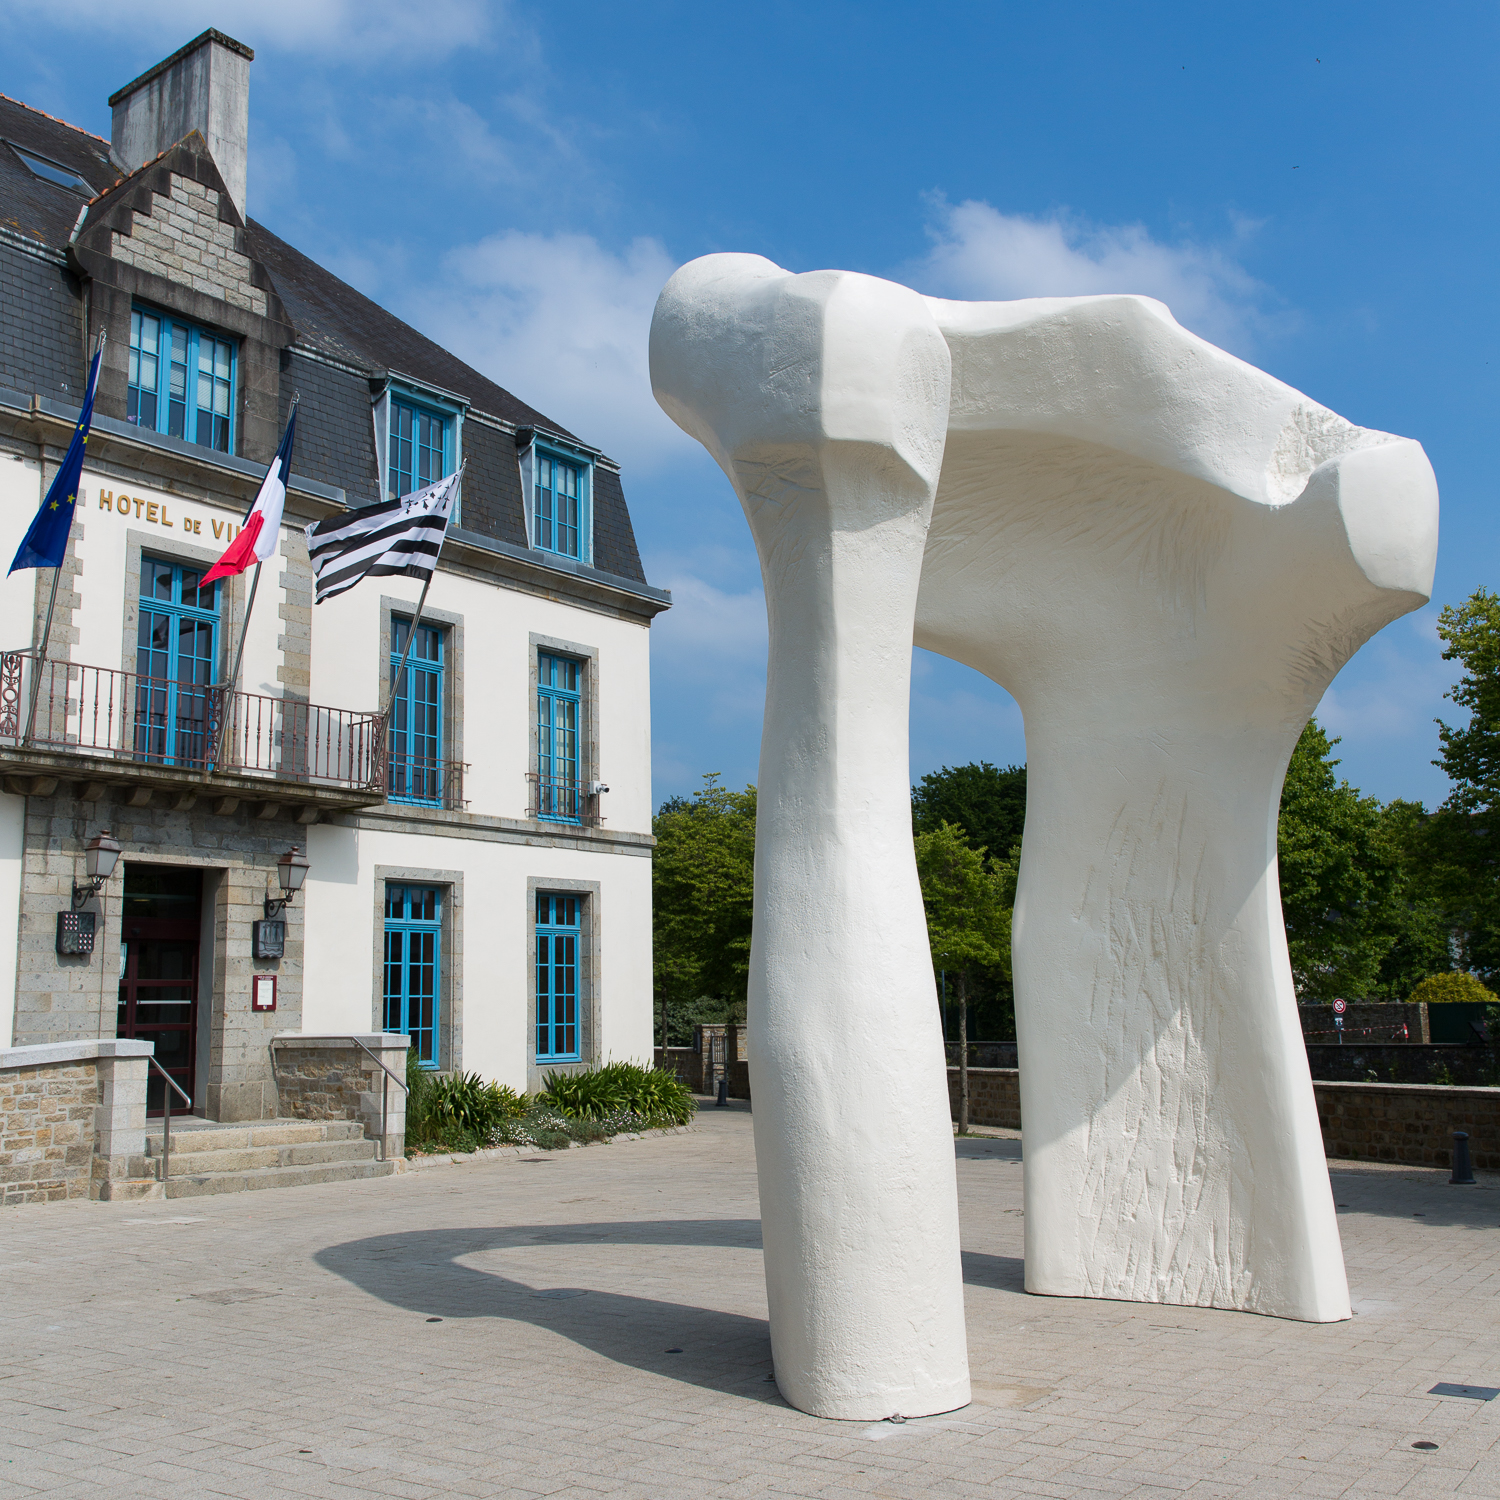 The_Arch__1963_1969__Henry_Moore_Place_de_la_Mairie_Landerneau._Reproduit_avec_l_autorisation_de_la_Henry_Moore_Foundation_Photo_N._Savale___FHEL__2018_HD.jpg